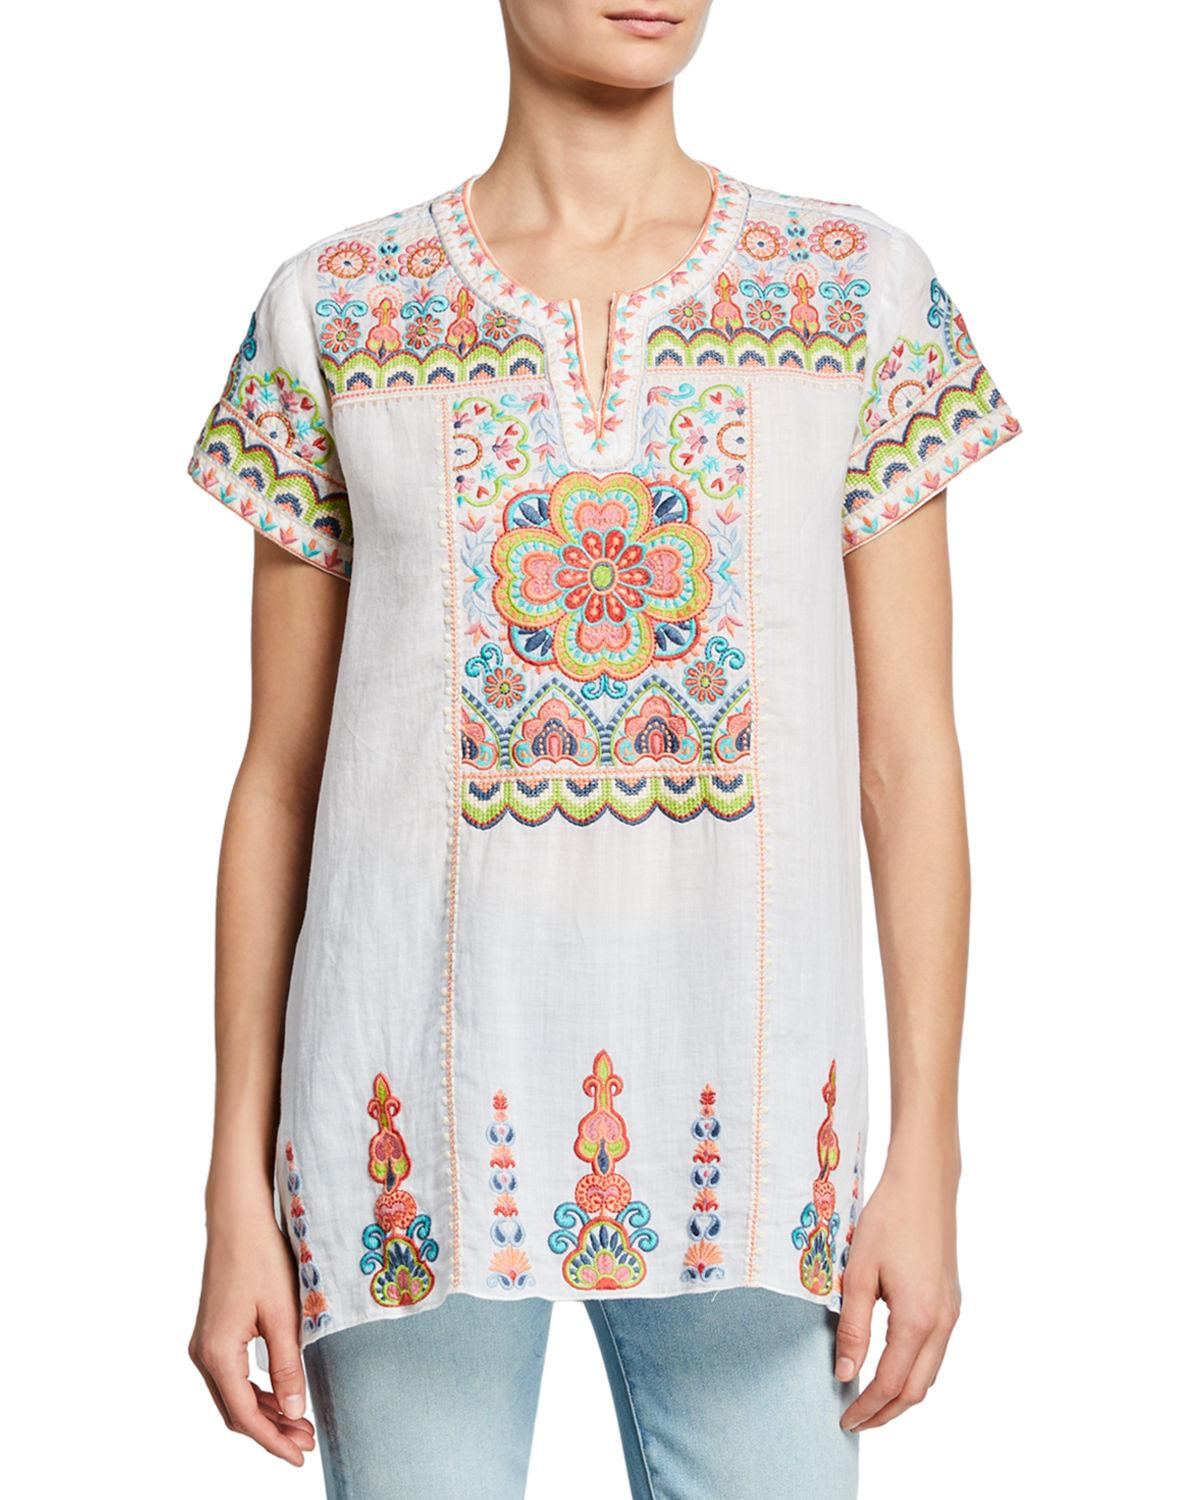 202fb739738f9 Lyst - Johnny Was Tamia Embroidered Draped Top in White